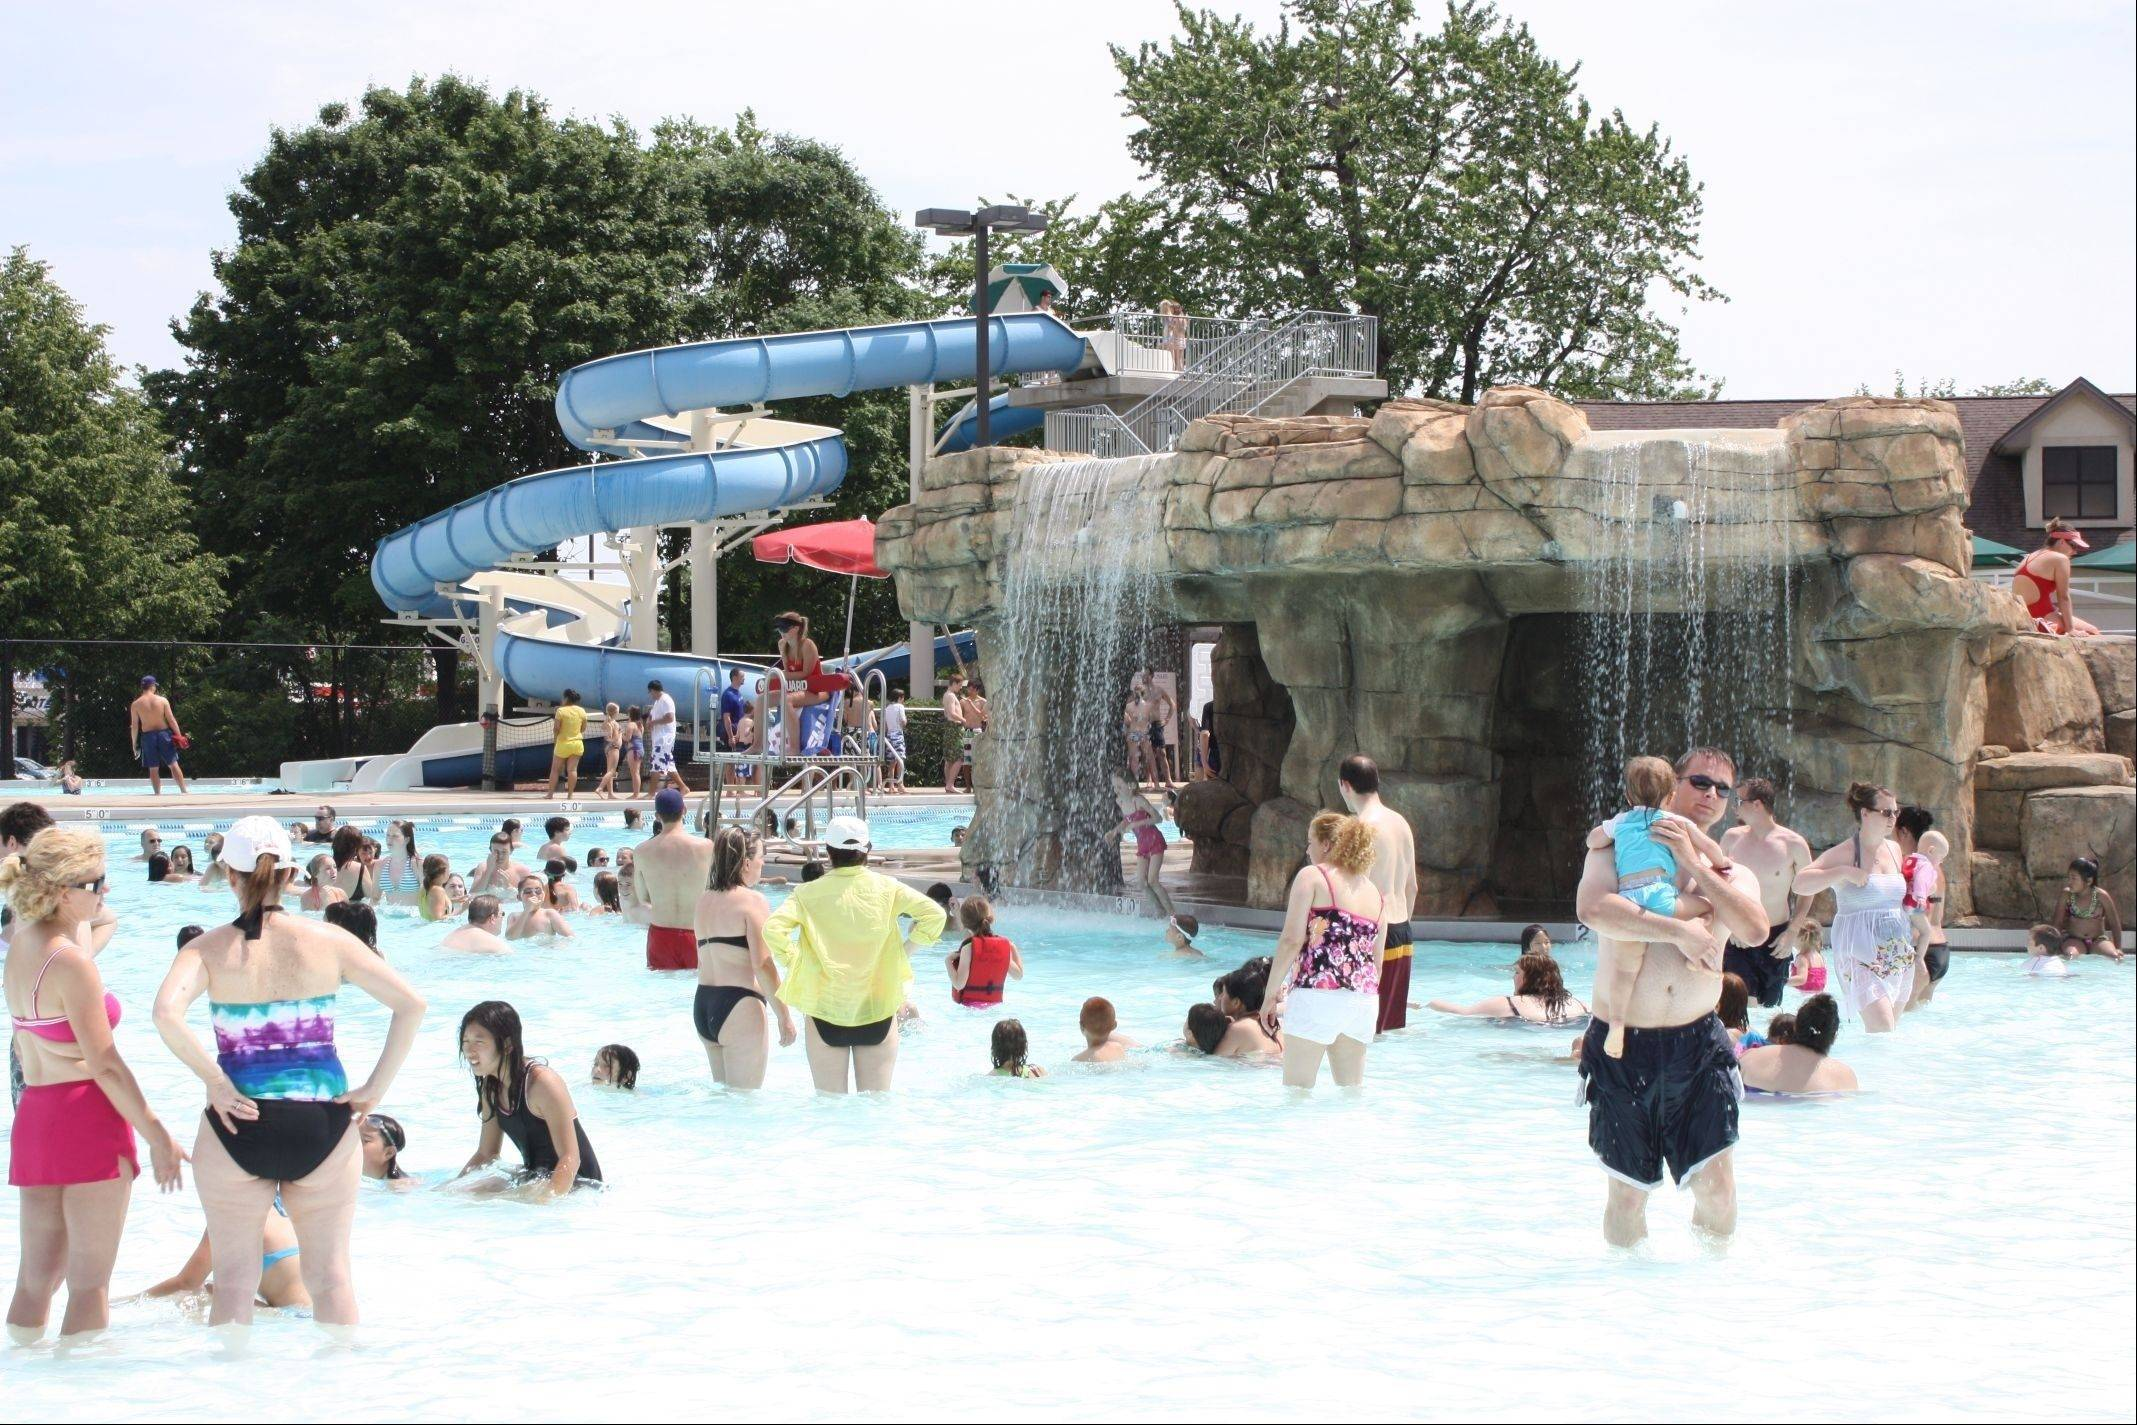 The Family Aquatic Center will be open from May 25-Aug. 11 and is located at 304 E. Palatine Road, in Palatine.